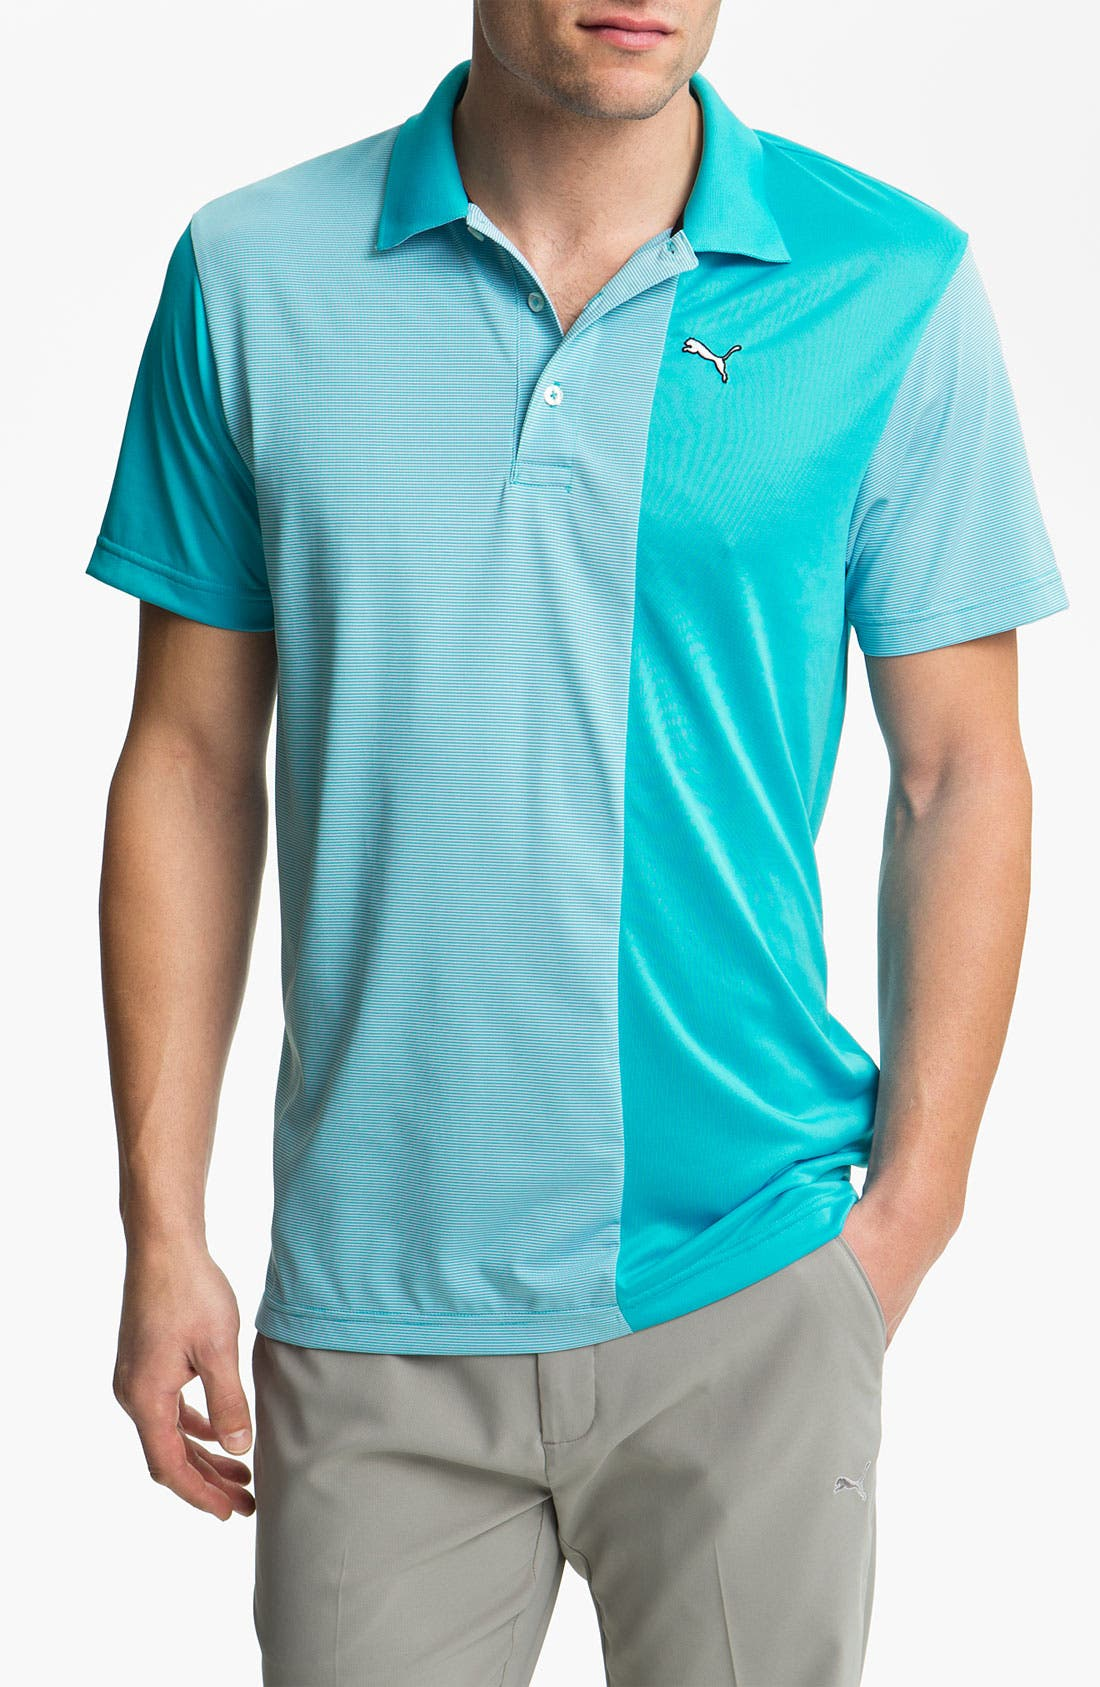 Alternate Image 1 Selected - PUMA GOLF 'New Wave' dryCELL™ Polo